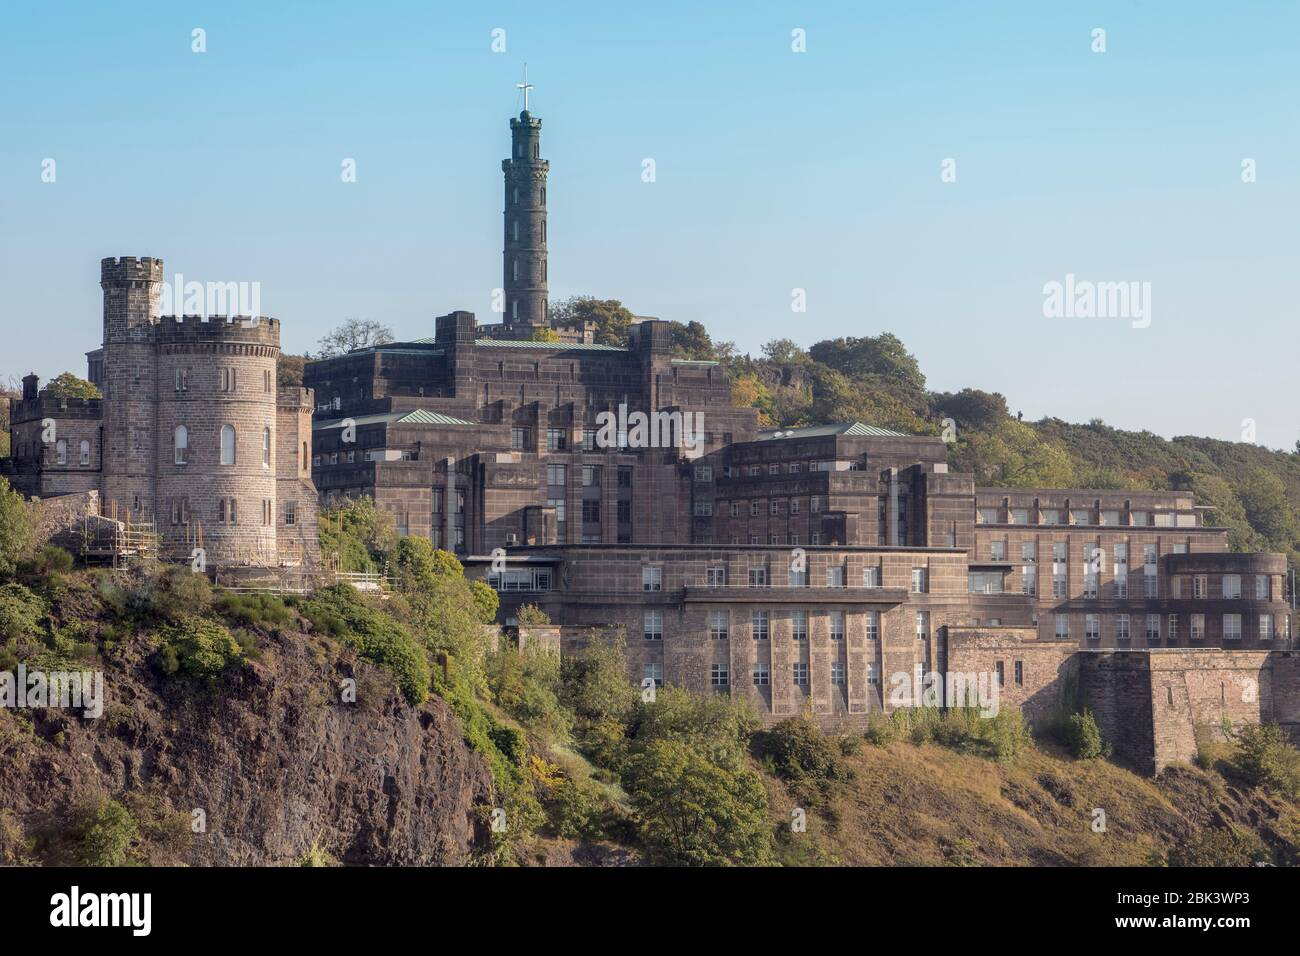 View of the Nelson Monument on Calton Hill in Edinburgh, viewed from near Waverley Station, which houses a small museum and is a great viewpoint Stock Photo